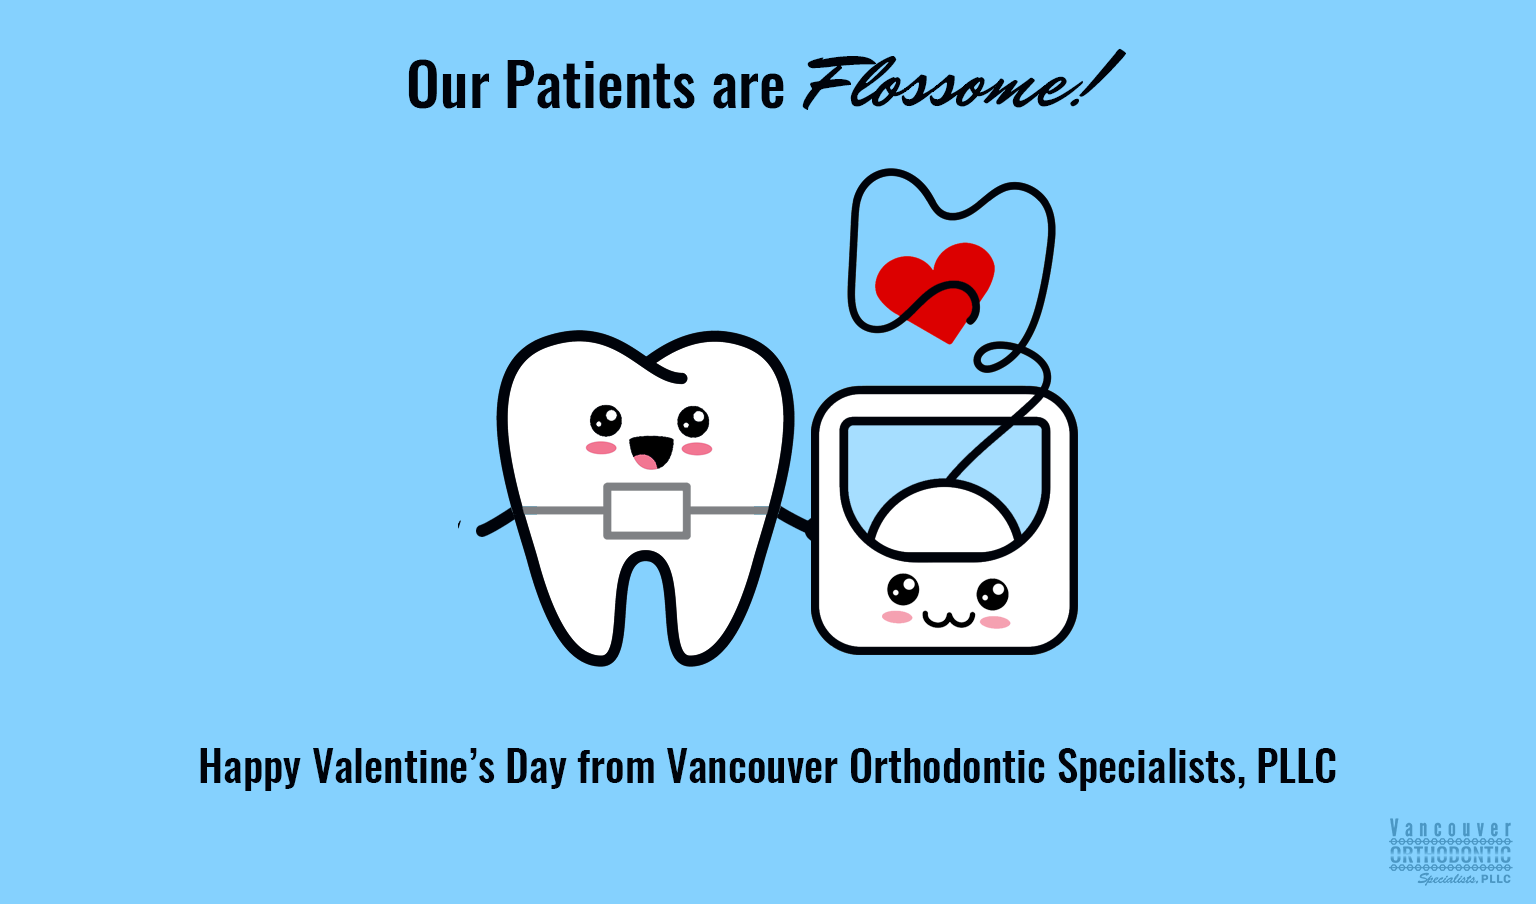 """cute cartoon tooth wearing a braces belt and floss with a heart along with the text """"our patients are flossome! Happy Valentine's Day from Vancouver Orthodontic Specialists PLLC"""""""